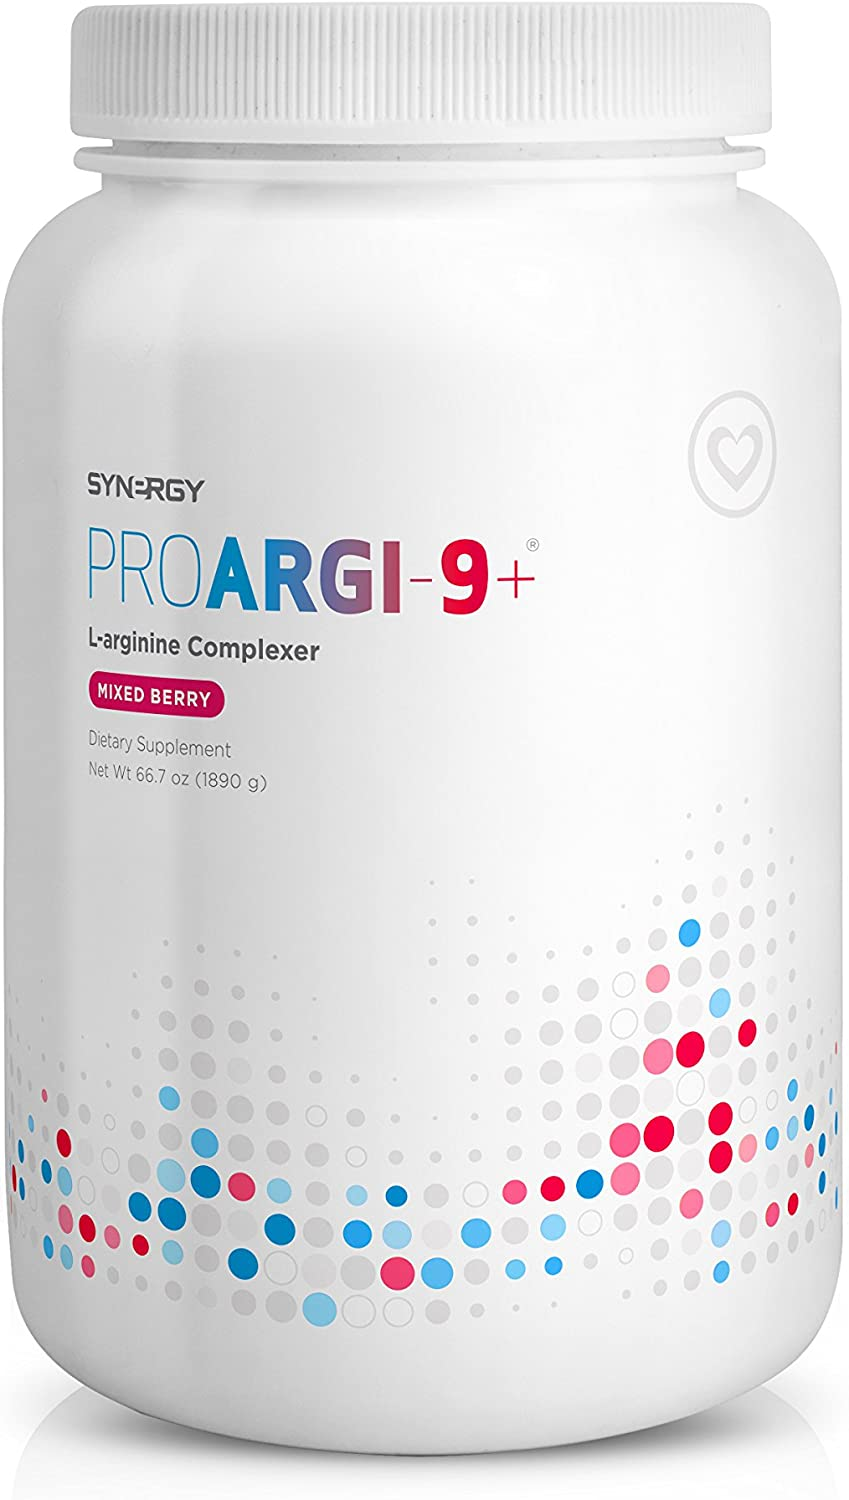 Proargi9 Plus L-arginine Complexer Jumbo Jar 66.6 Oz Mixed Berry